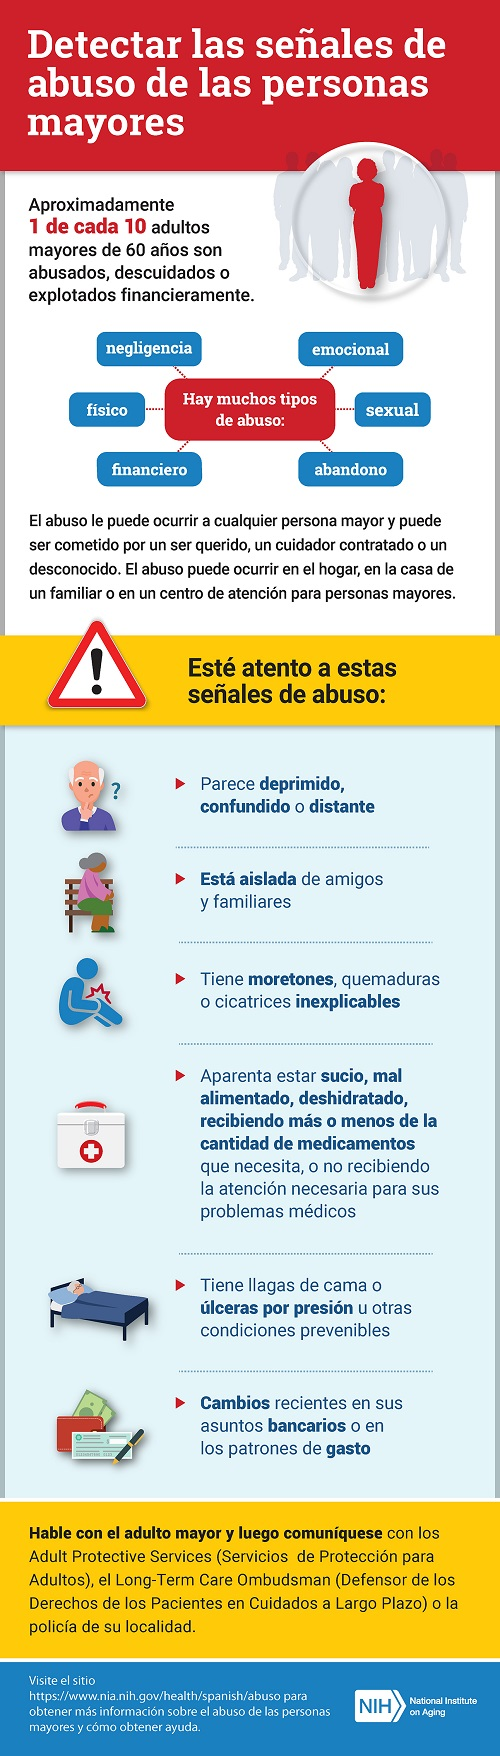 Spanish language infographic on detecting elder abuse. Click through for full transcript